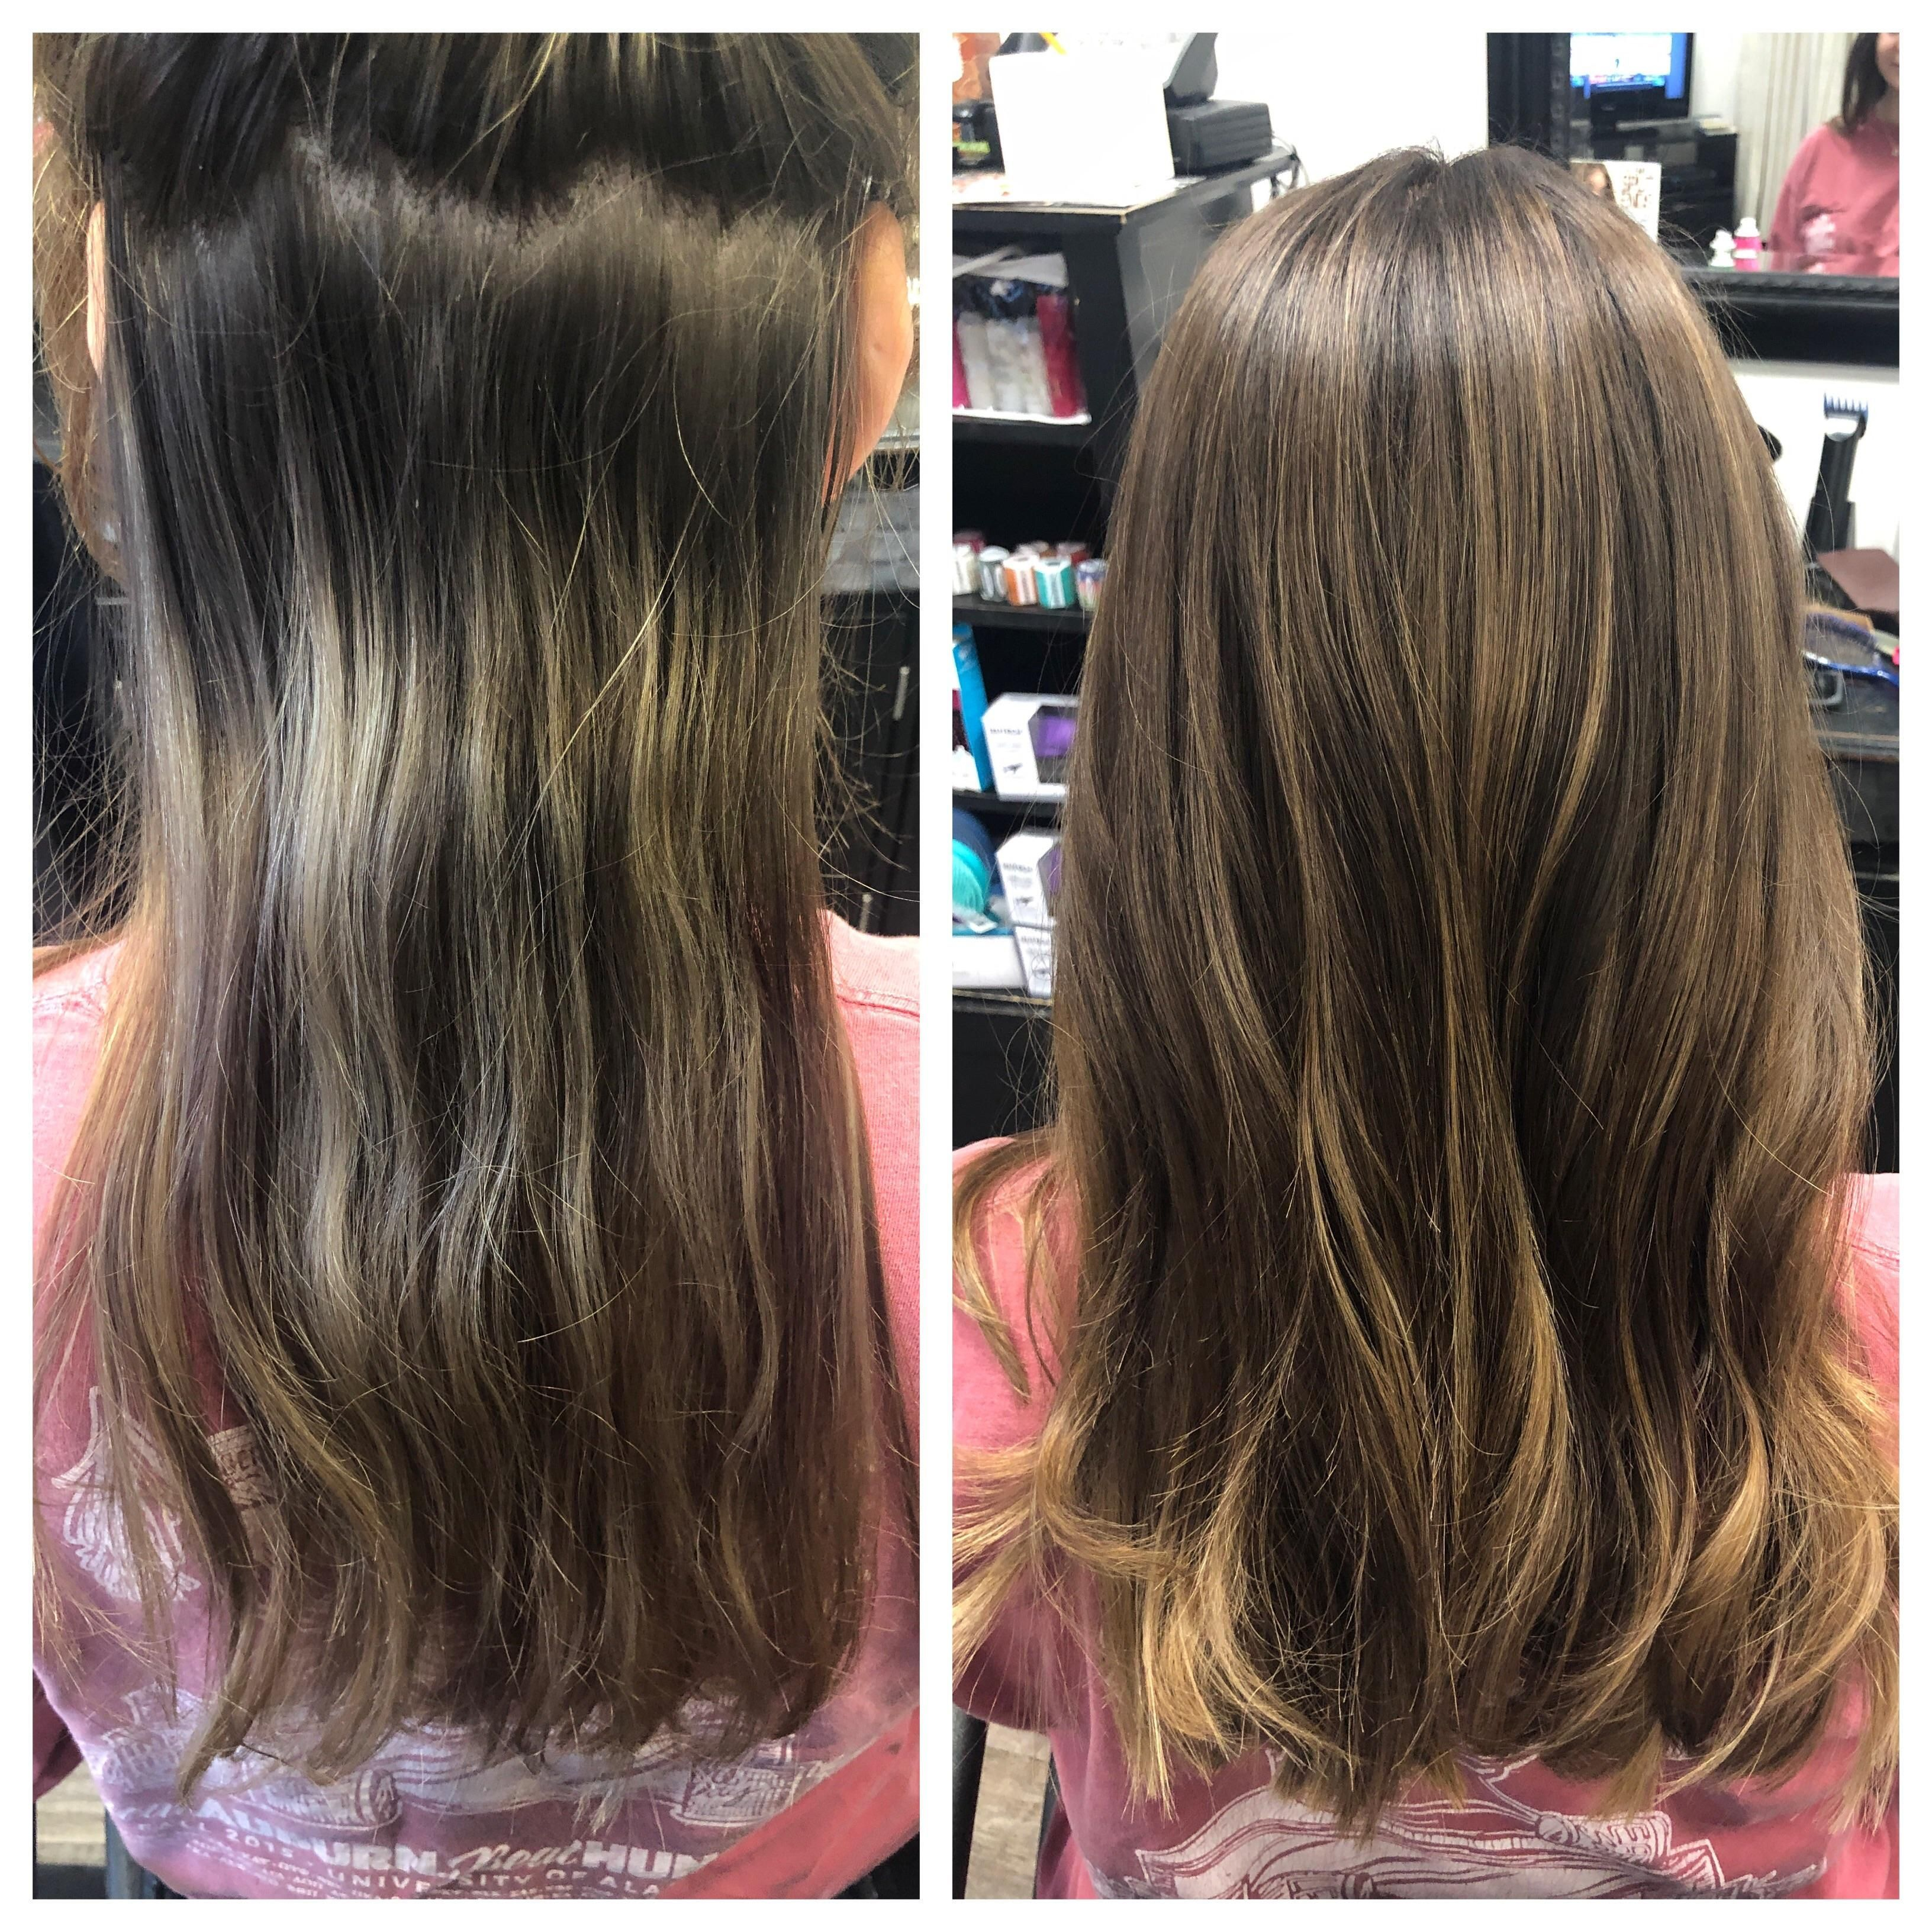 From Bad Salon Highlights Not Even Close To The Root And Yellow Orange To A Beauti Hair Color For Black Hair Icy Blonde Hair Hair Color Blonde Highlights